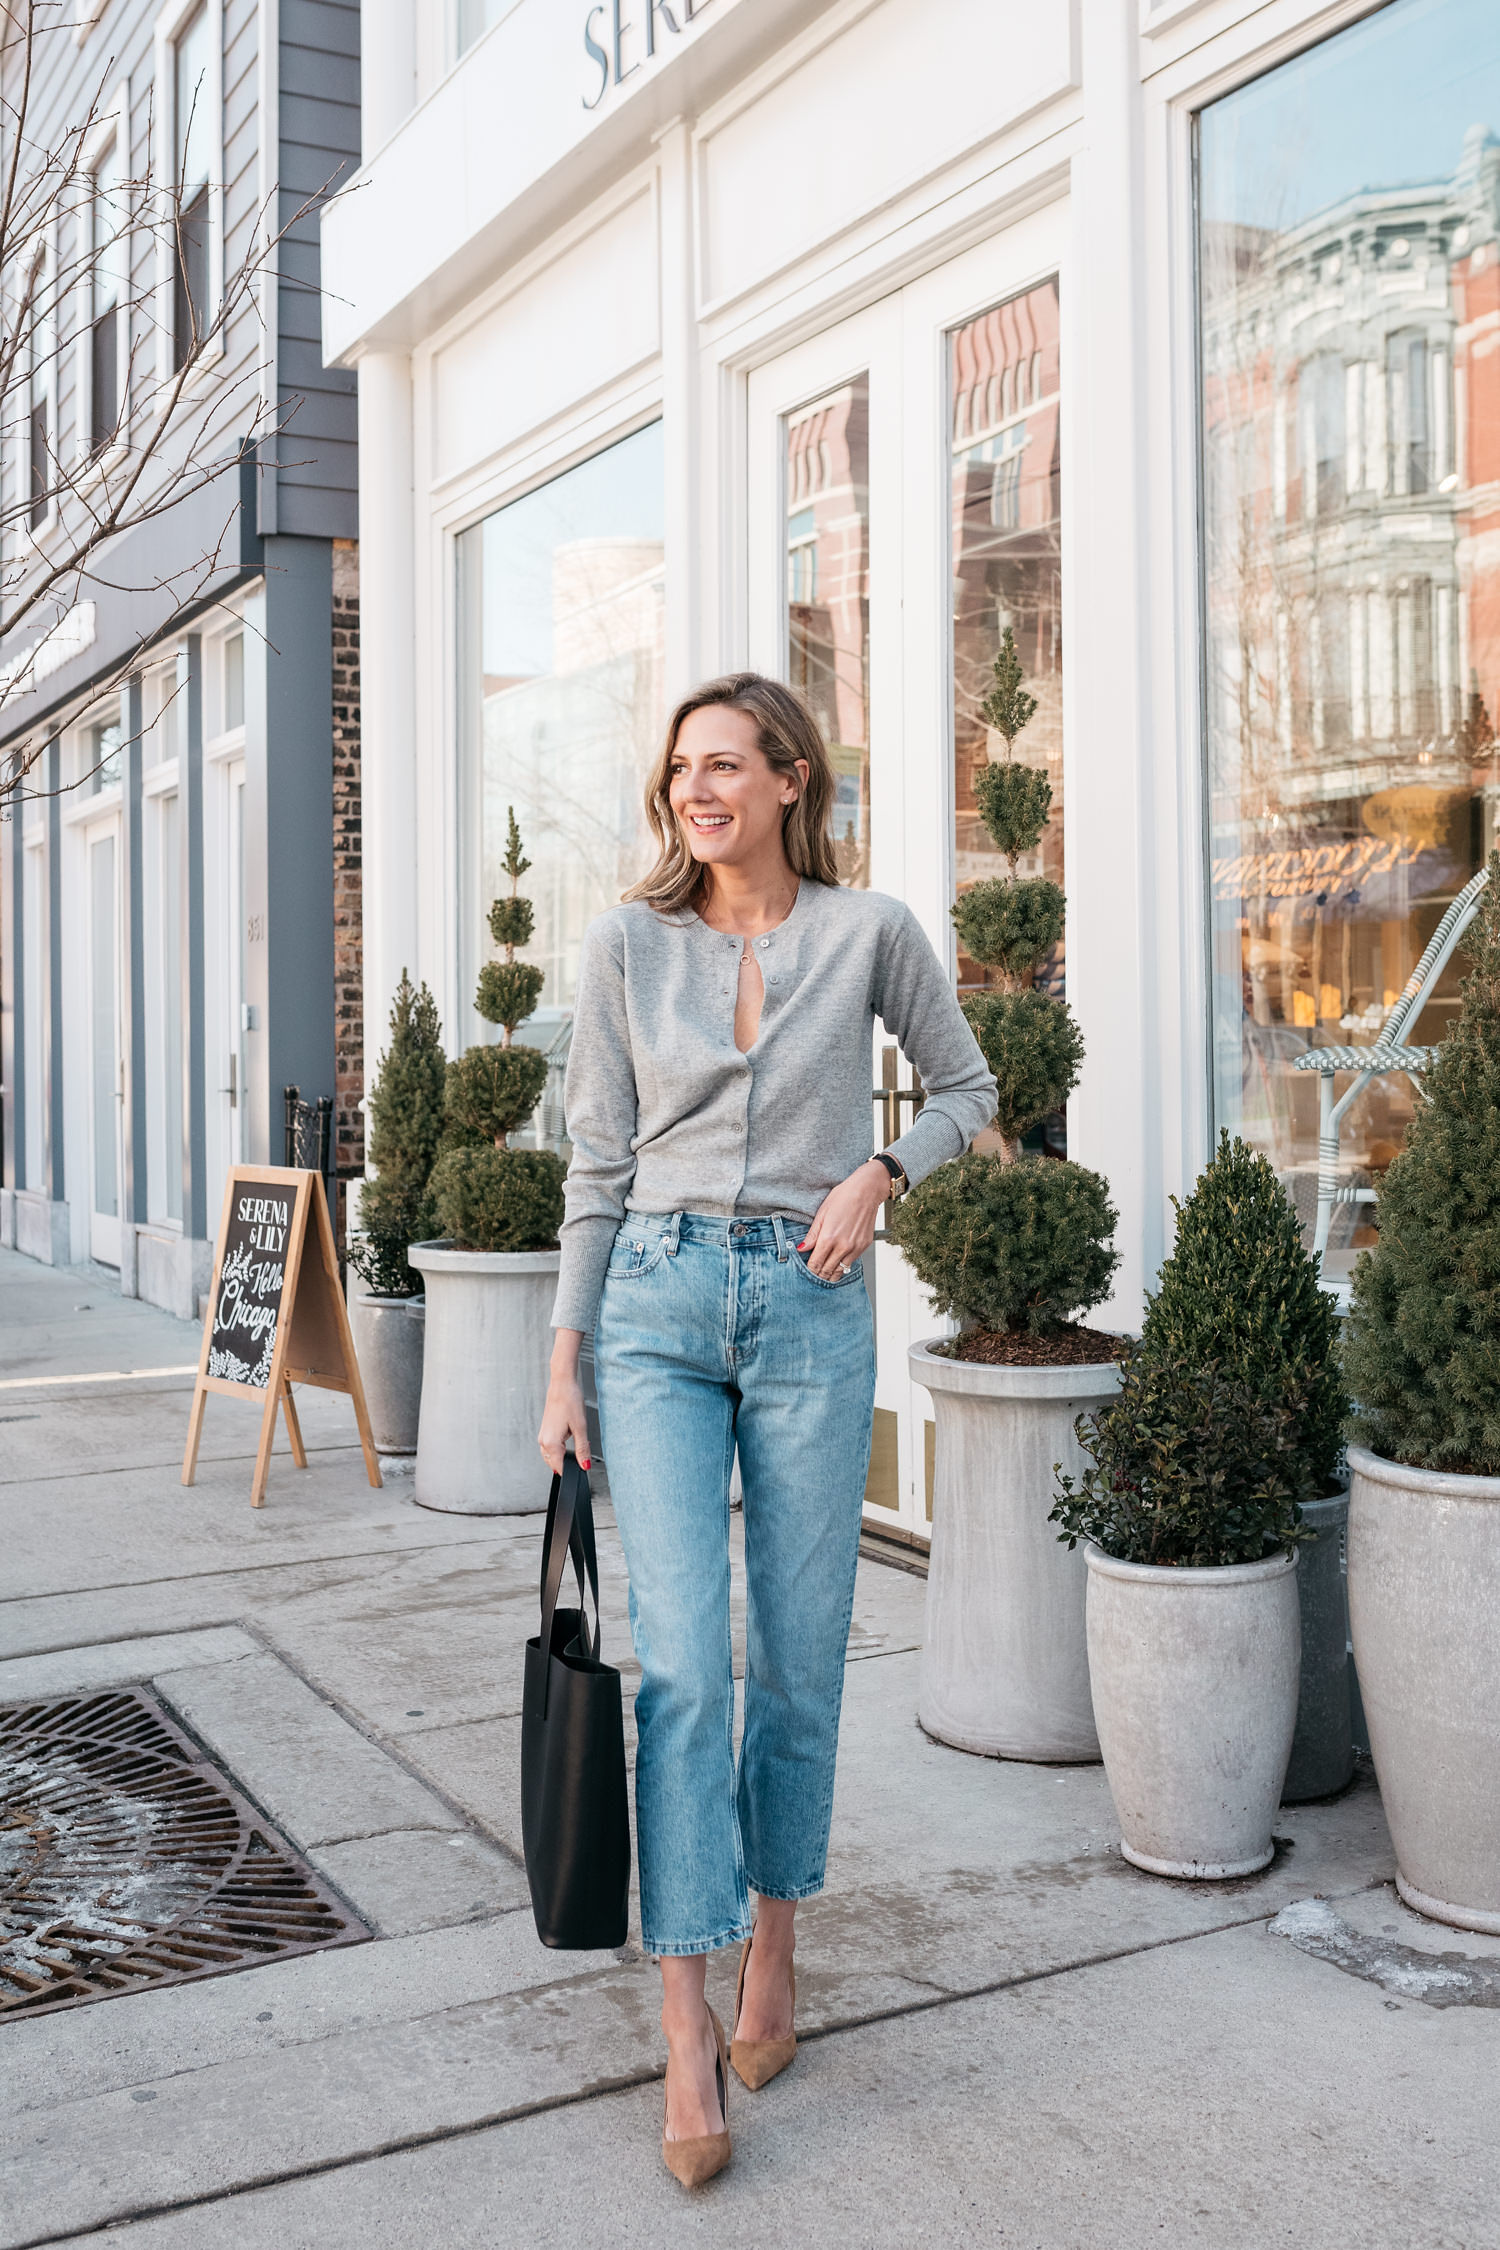 everlane cashmere cardigan with jeans